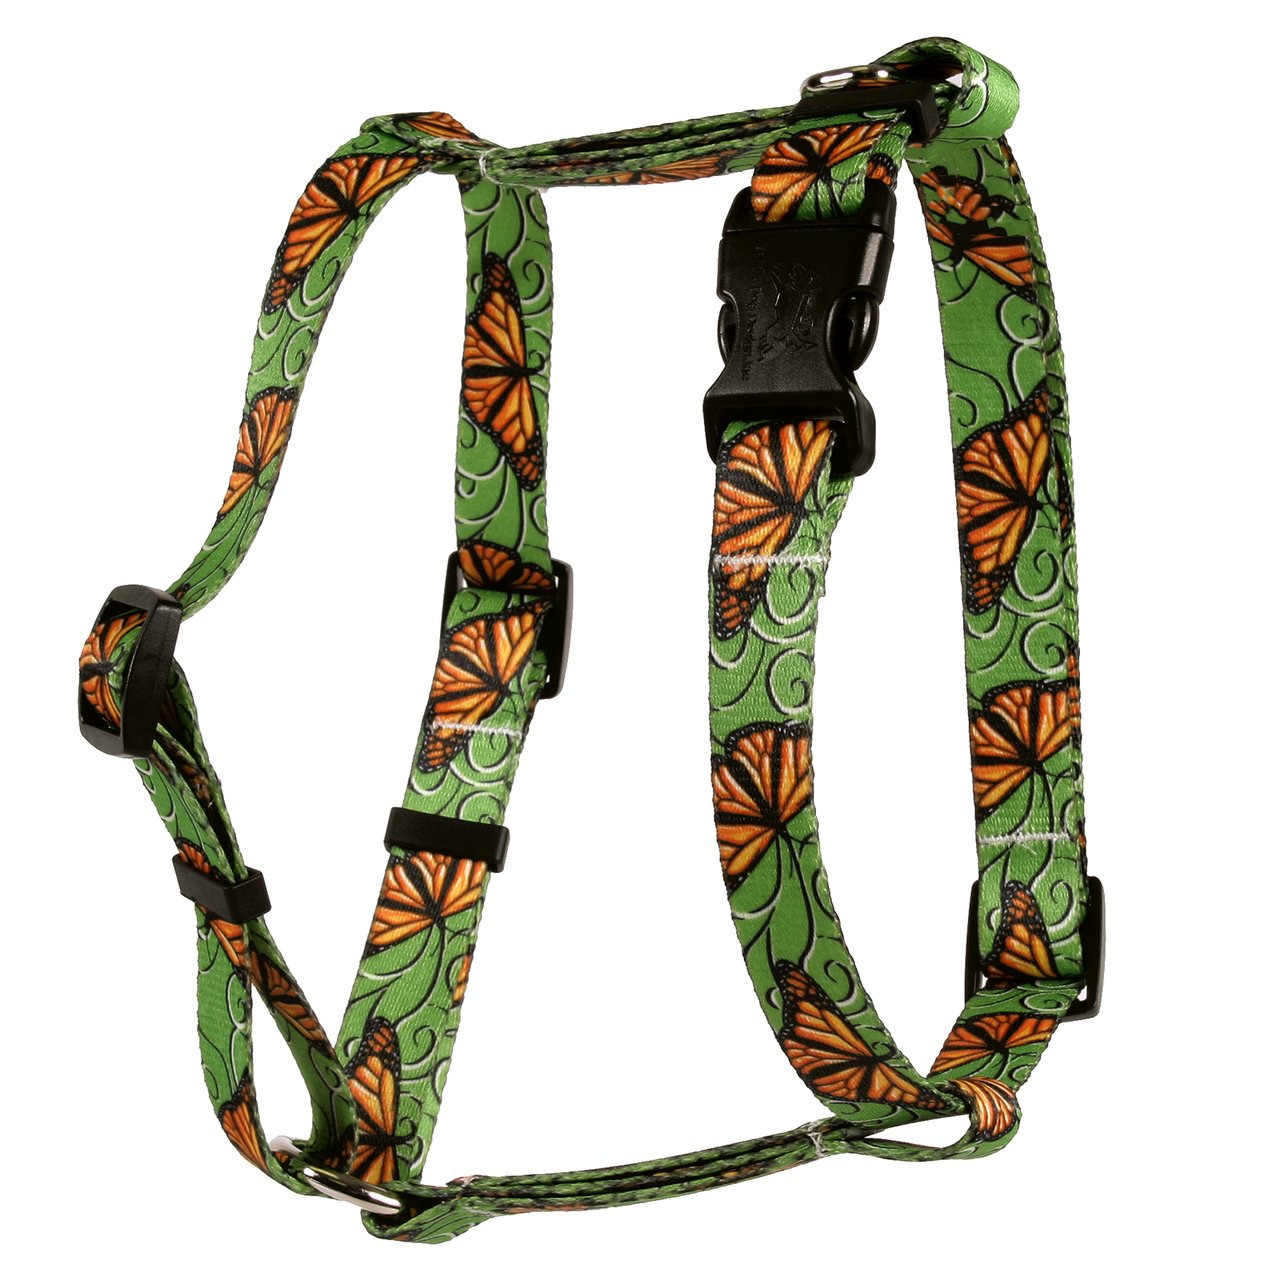 Yellow Dog Design Monarch Swirl Roman Style H Dog Harness, Large-1'' Wide and fits Chest of 20 to 28'' by Yellow Dog Design